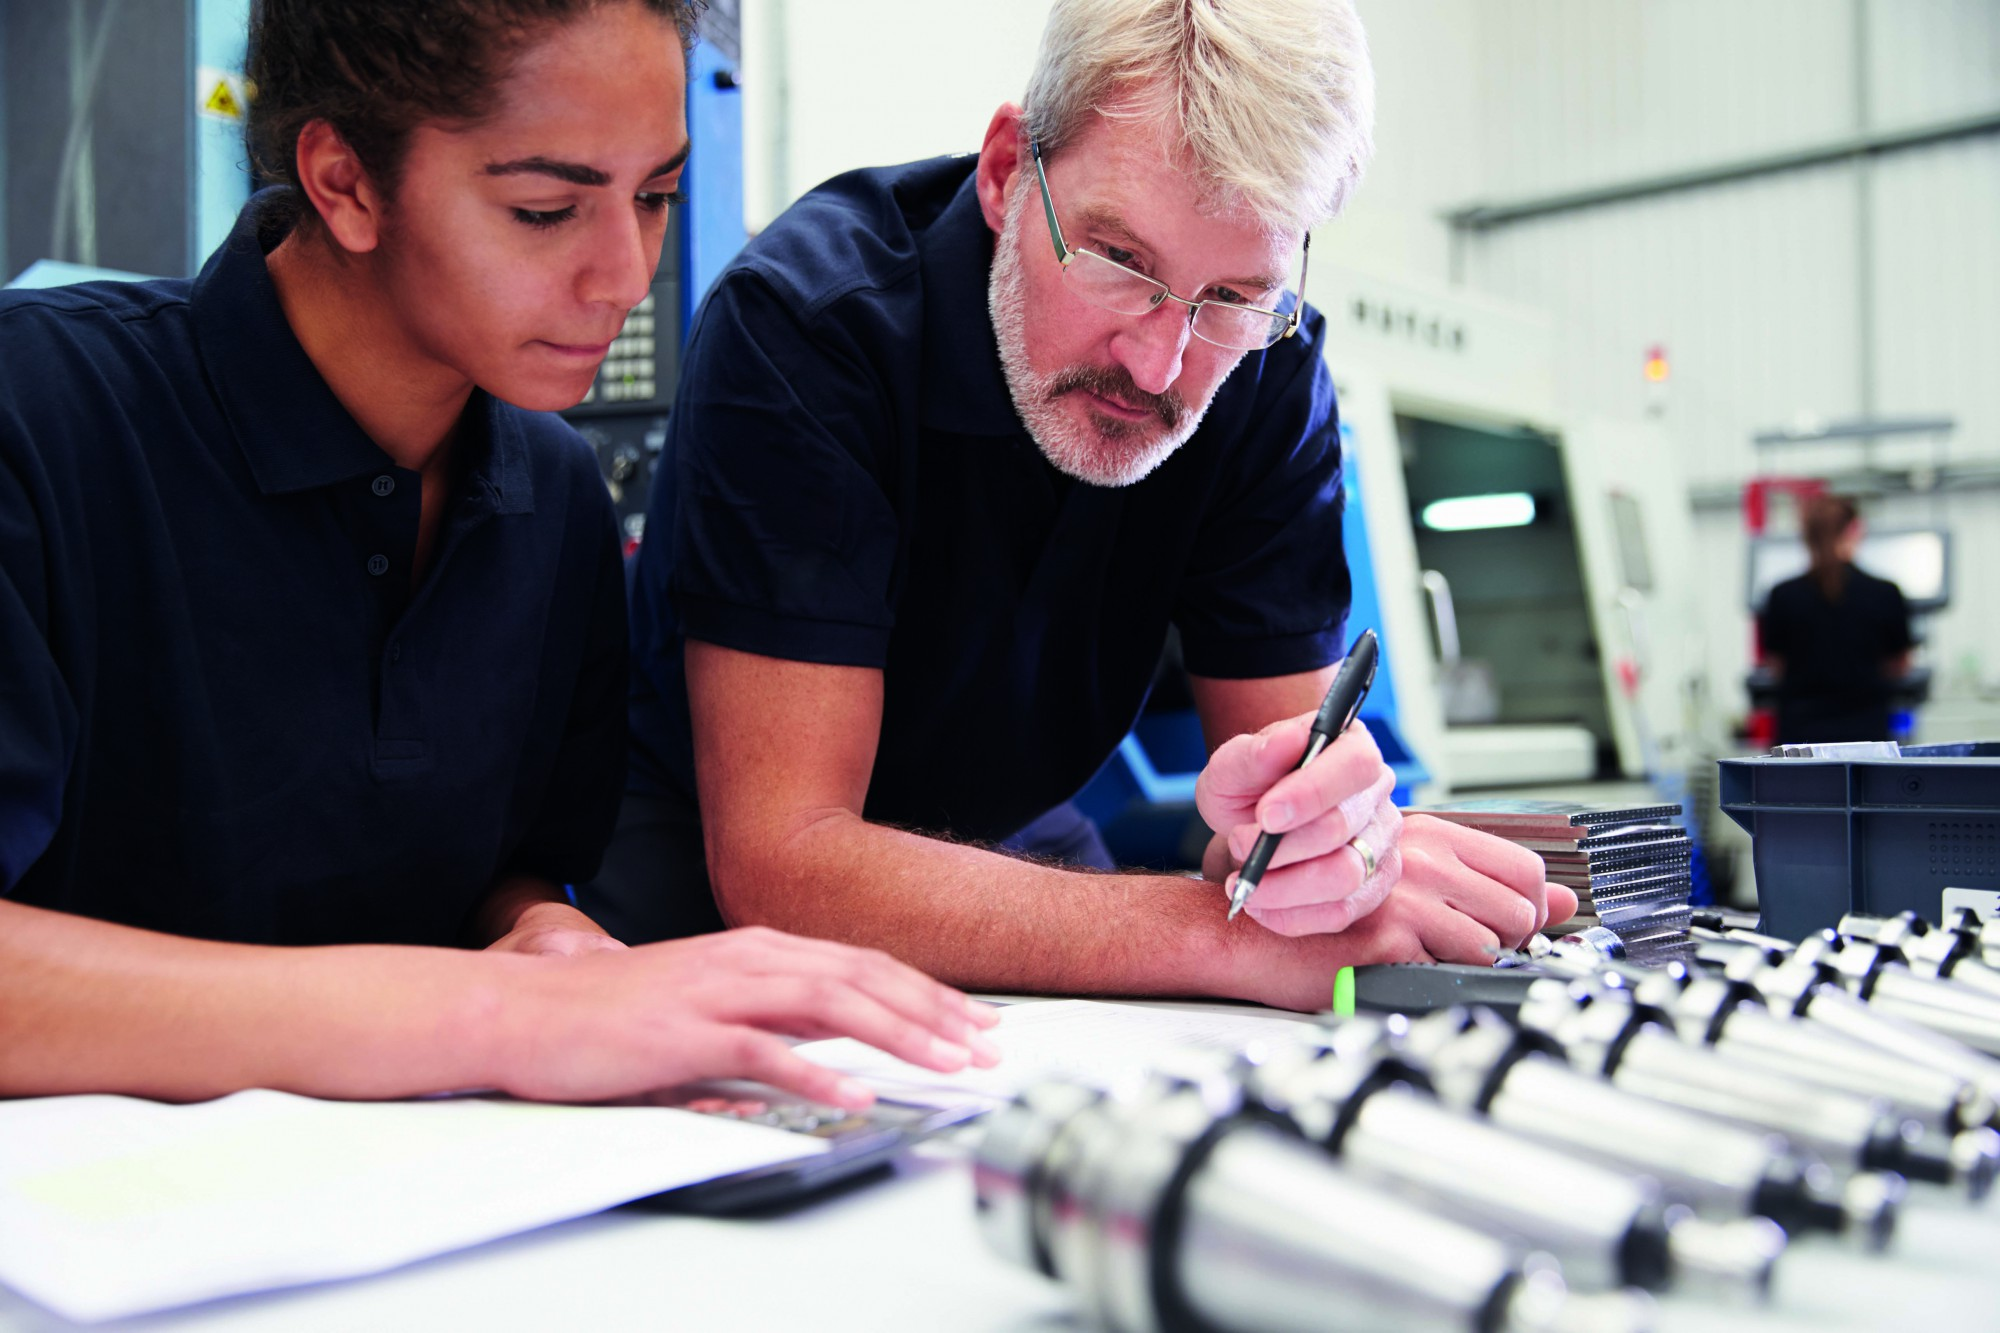 Free qualifications and training launched for SME employees in Tees Valley